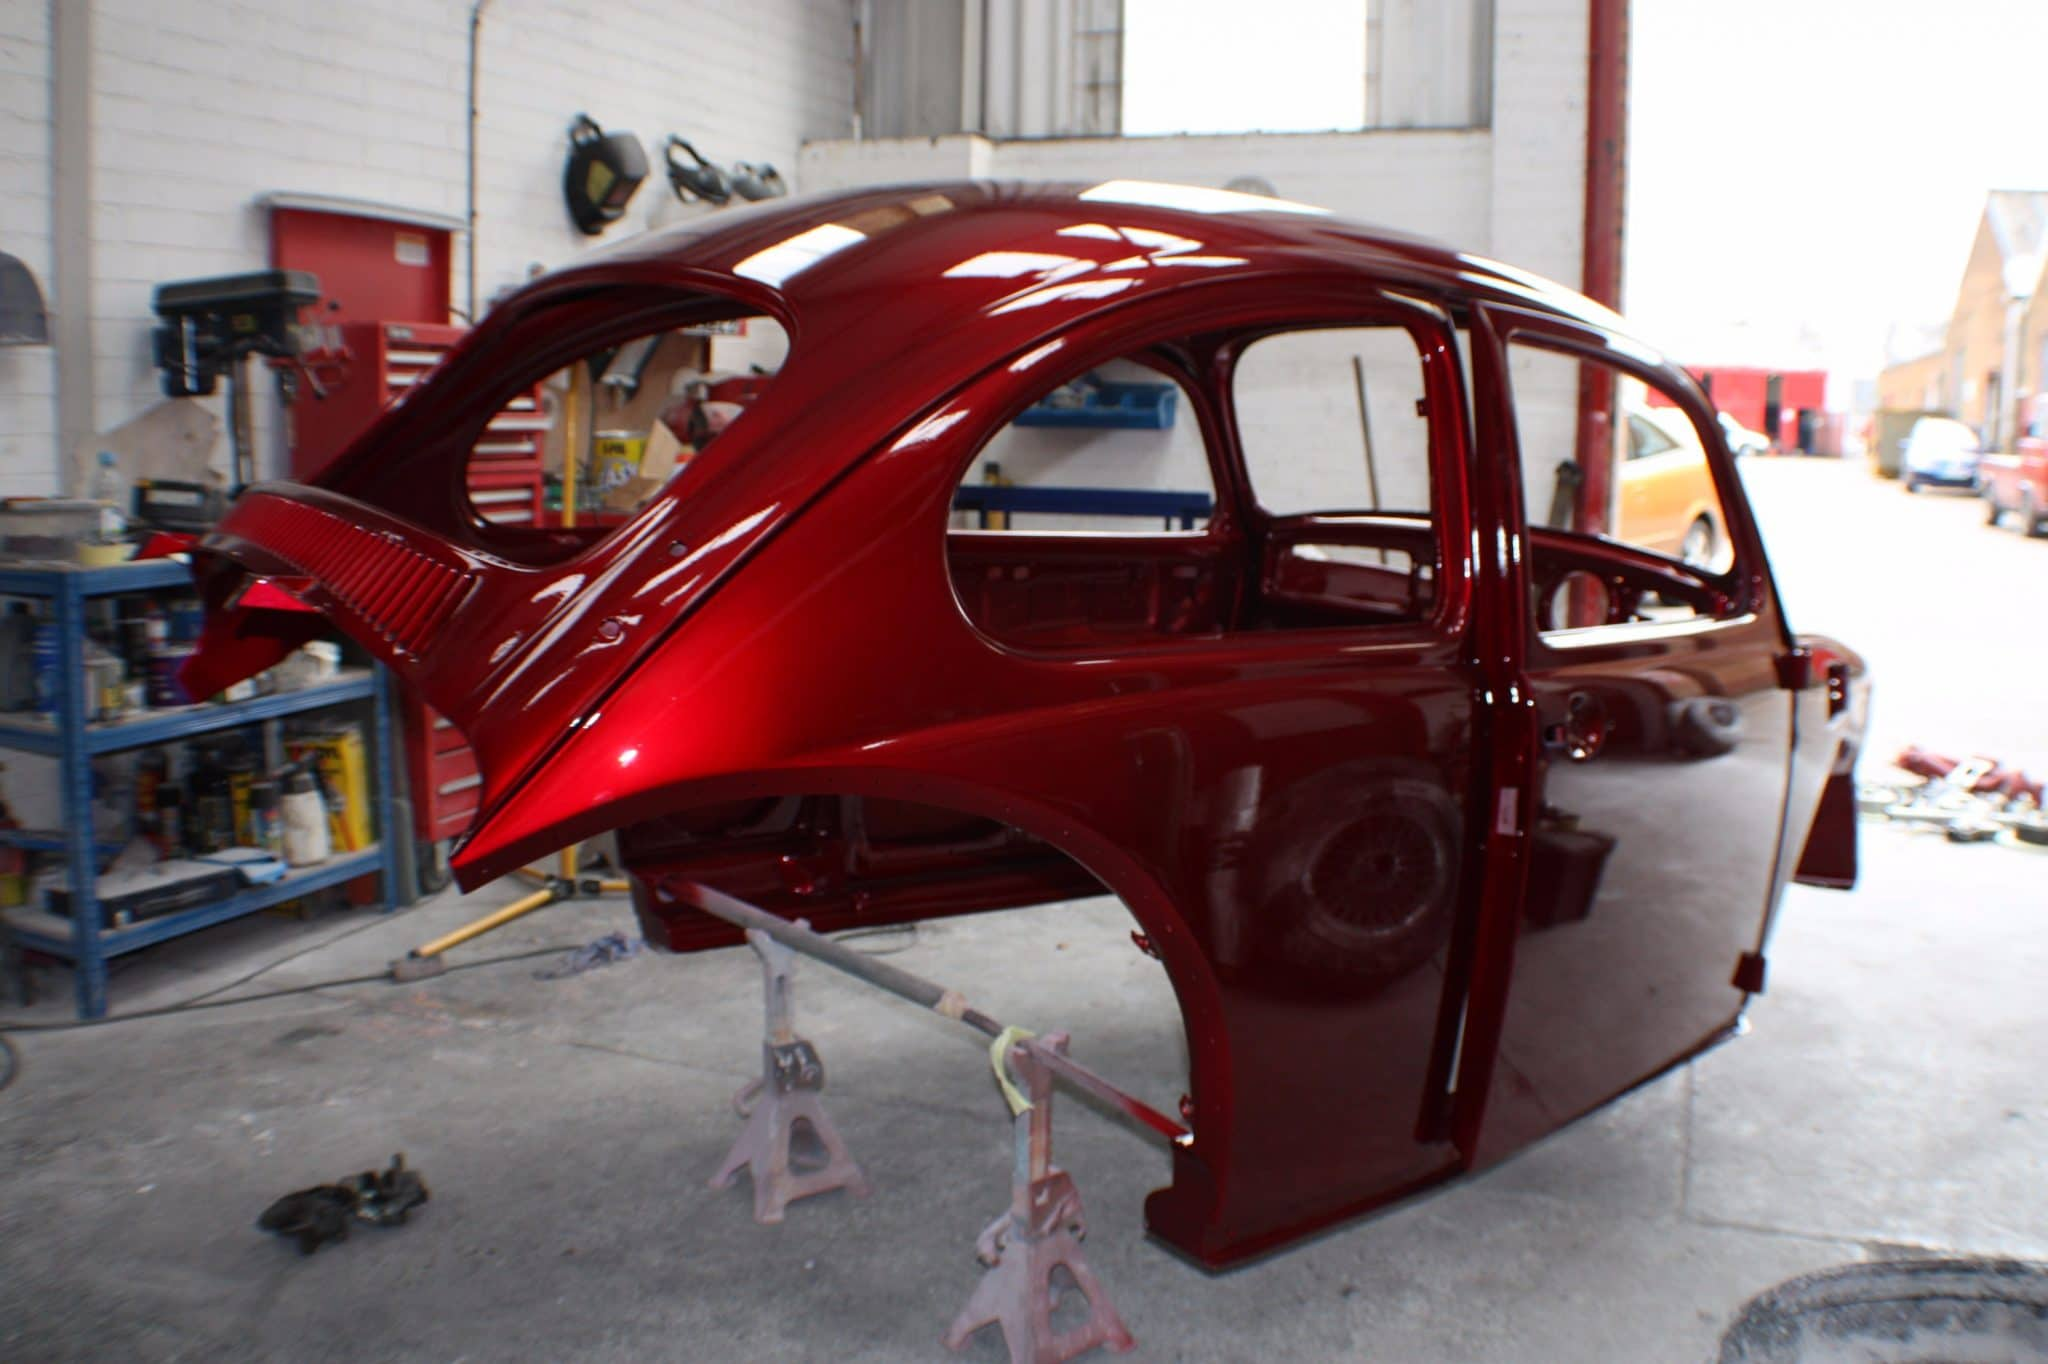 red ppf Beetle shell in workshop